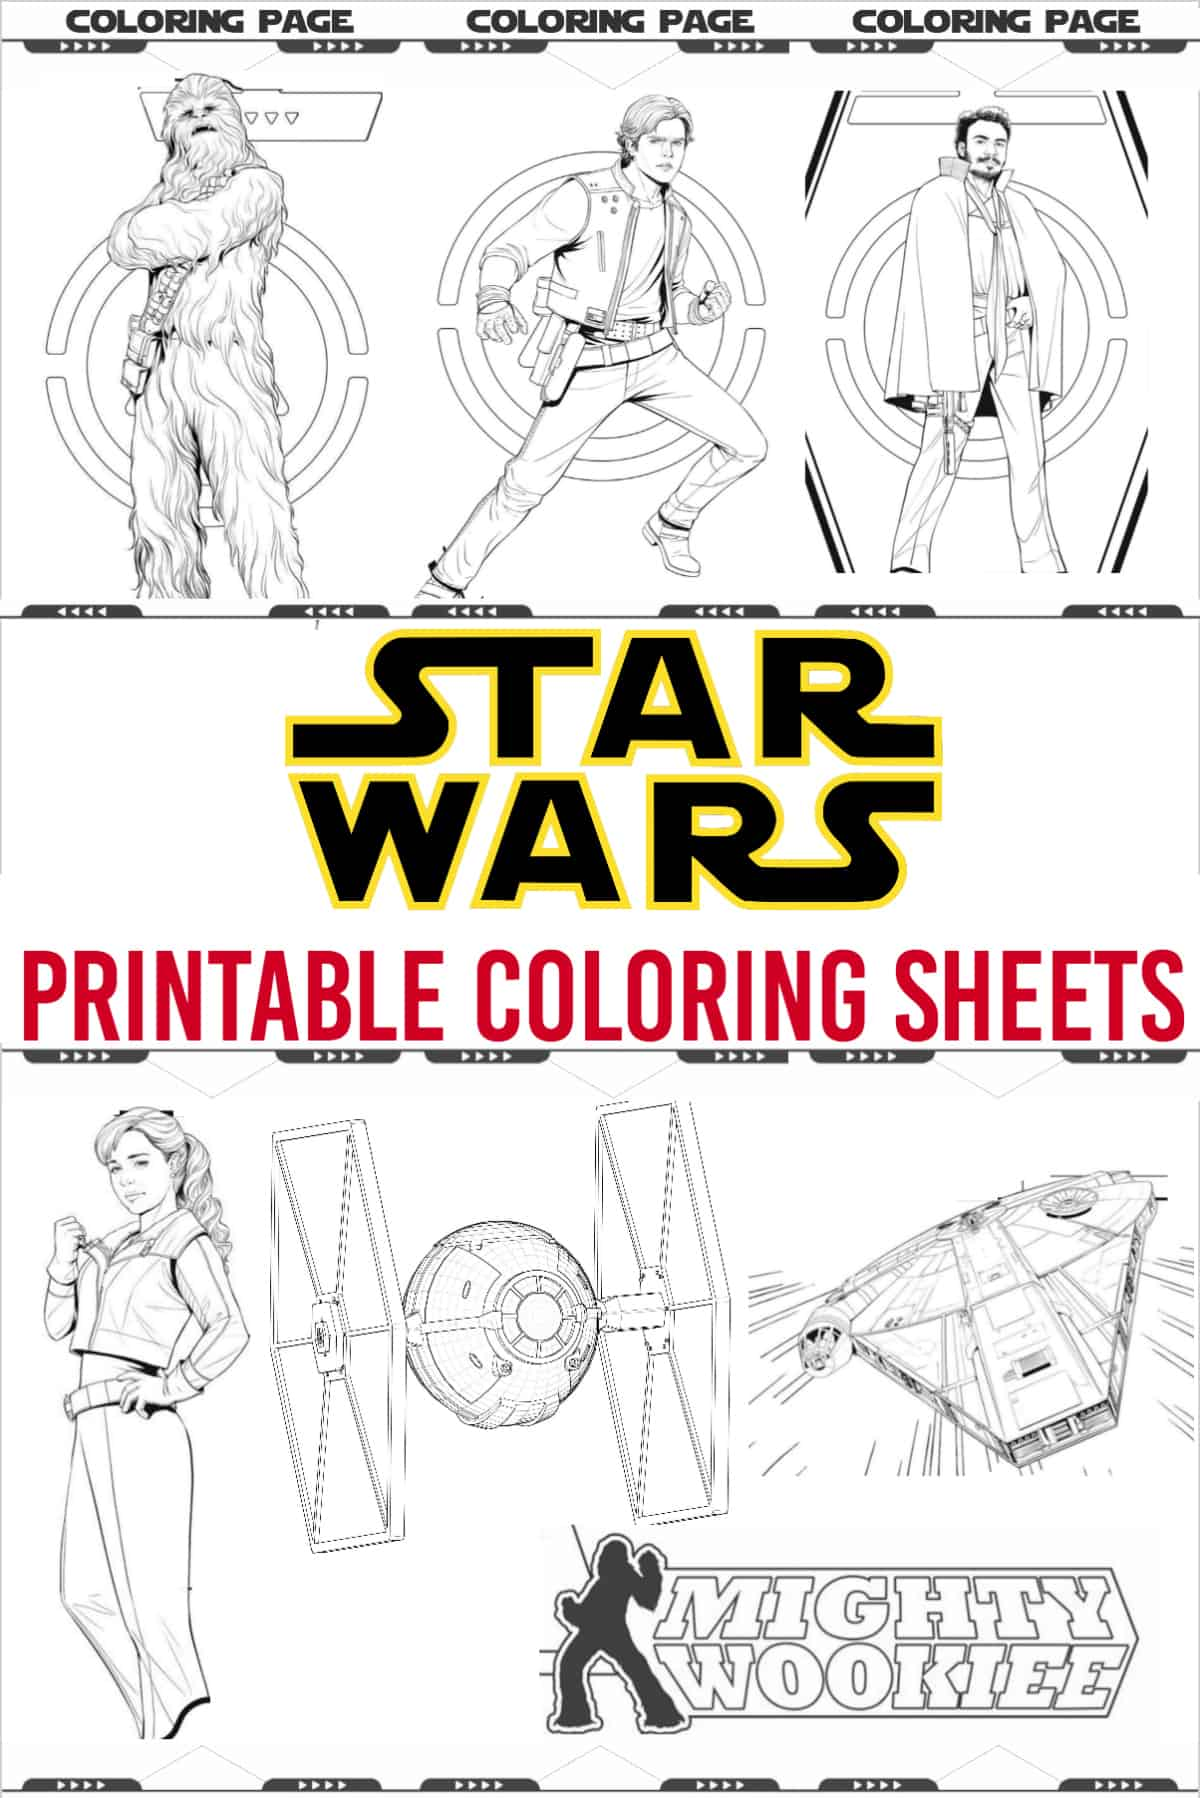 Star Wars coloring pages, activity sheets with Chewbacca, Hans Solo, Lando, tie fighter, millennium falcon and qi ra